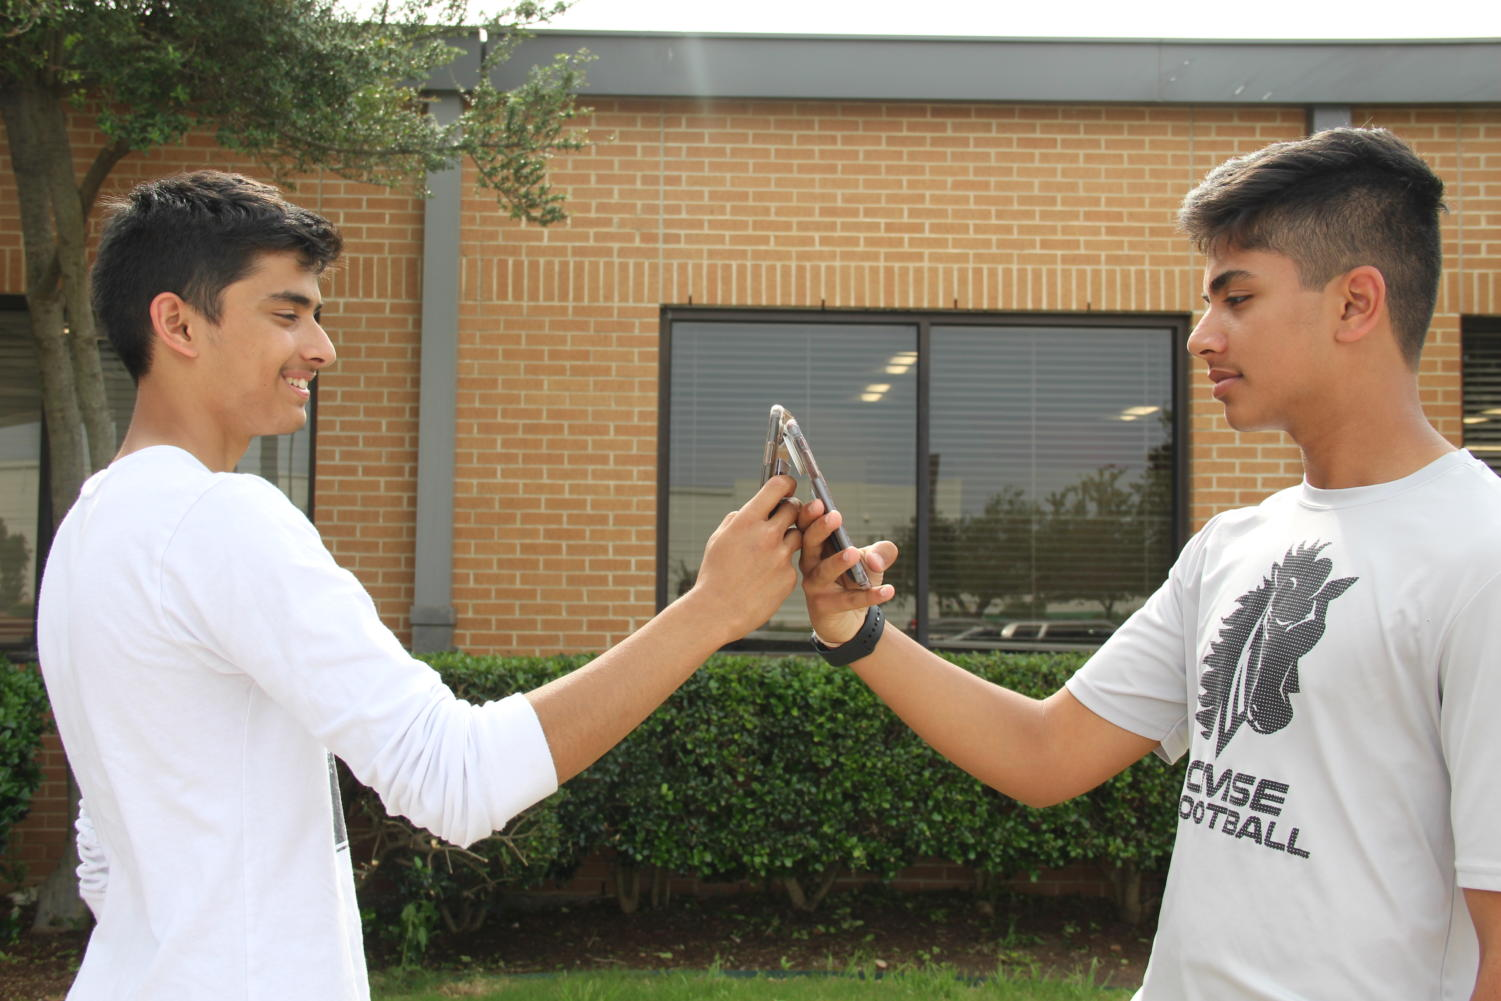 Earlier this year, CHS9 students Umang Kaushik and Svayam Sharma discovered that they could both unlock one phone using Face ID. This highly improbable occurrence raised concerns about the security of their apps, including banking and personal information, on their Apple phones.